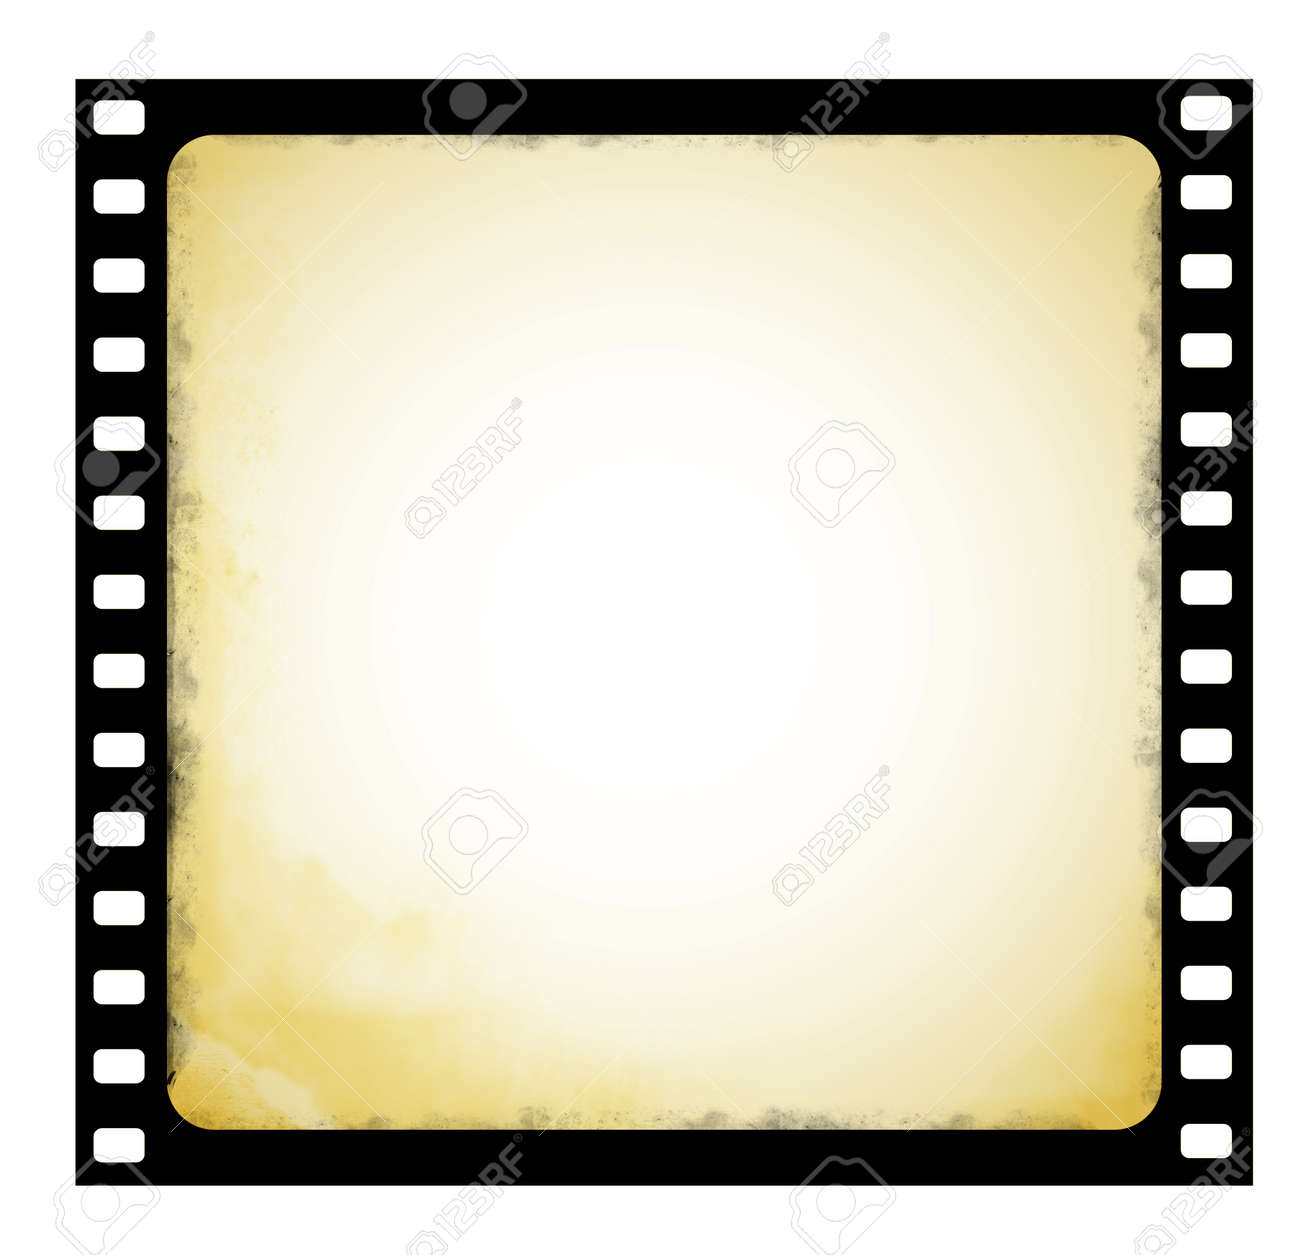 Old film frame in grunge style Stock Photo - 5117646